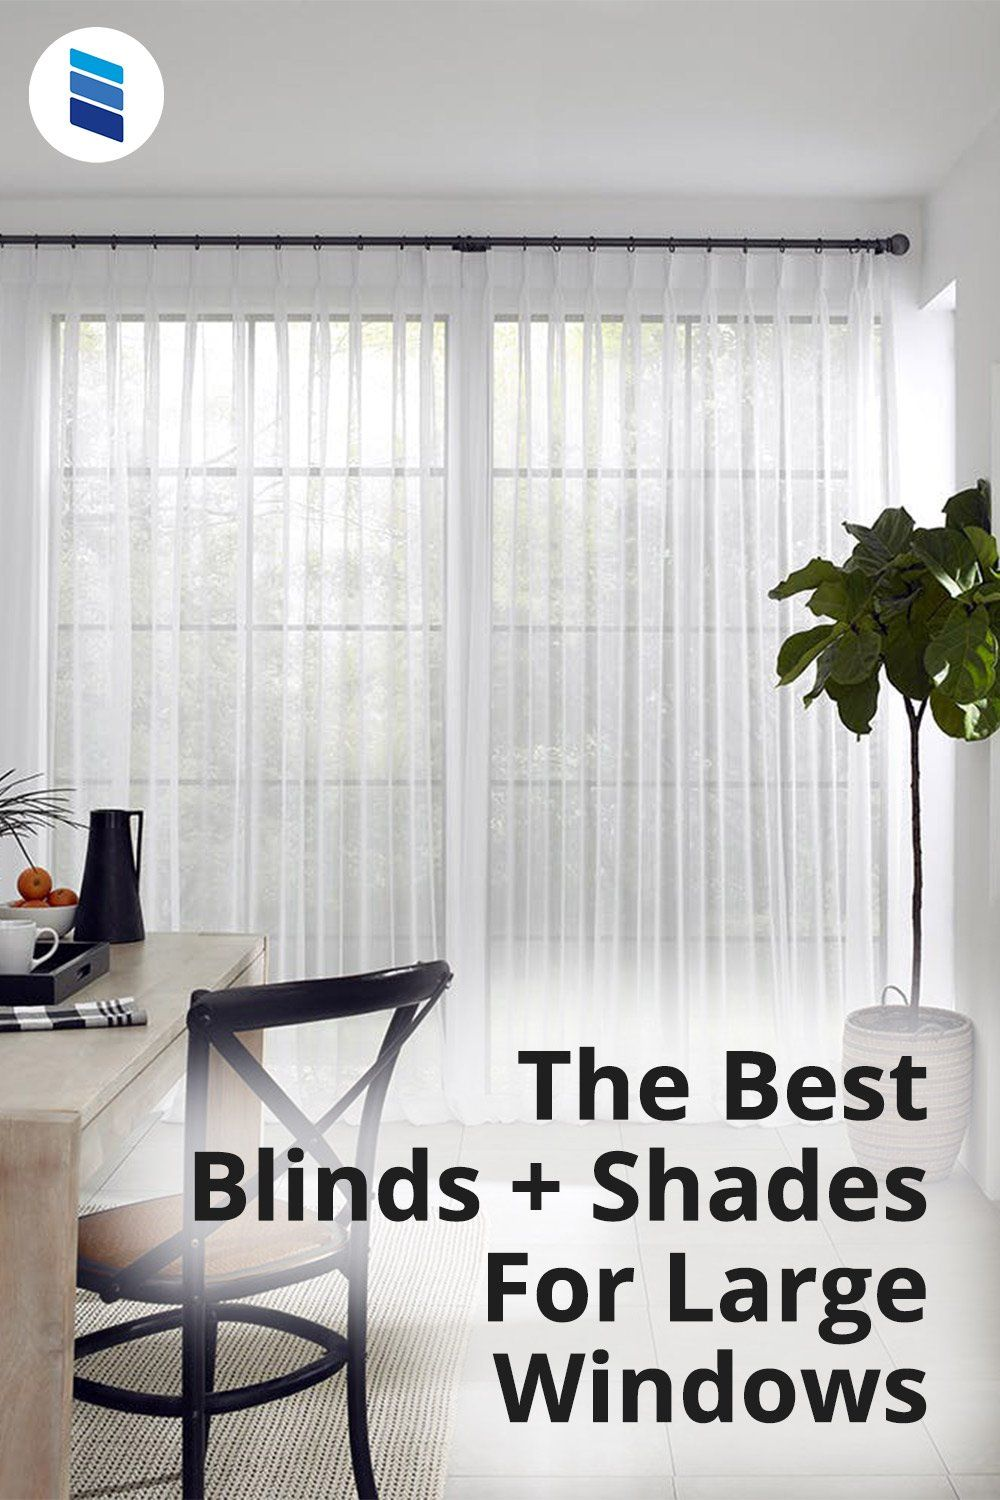 The Best Window Treatments For Large Windows Blinds Com In 2021 Large Windows Large Window Treatments Best Blinds